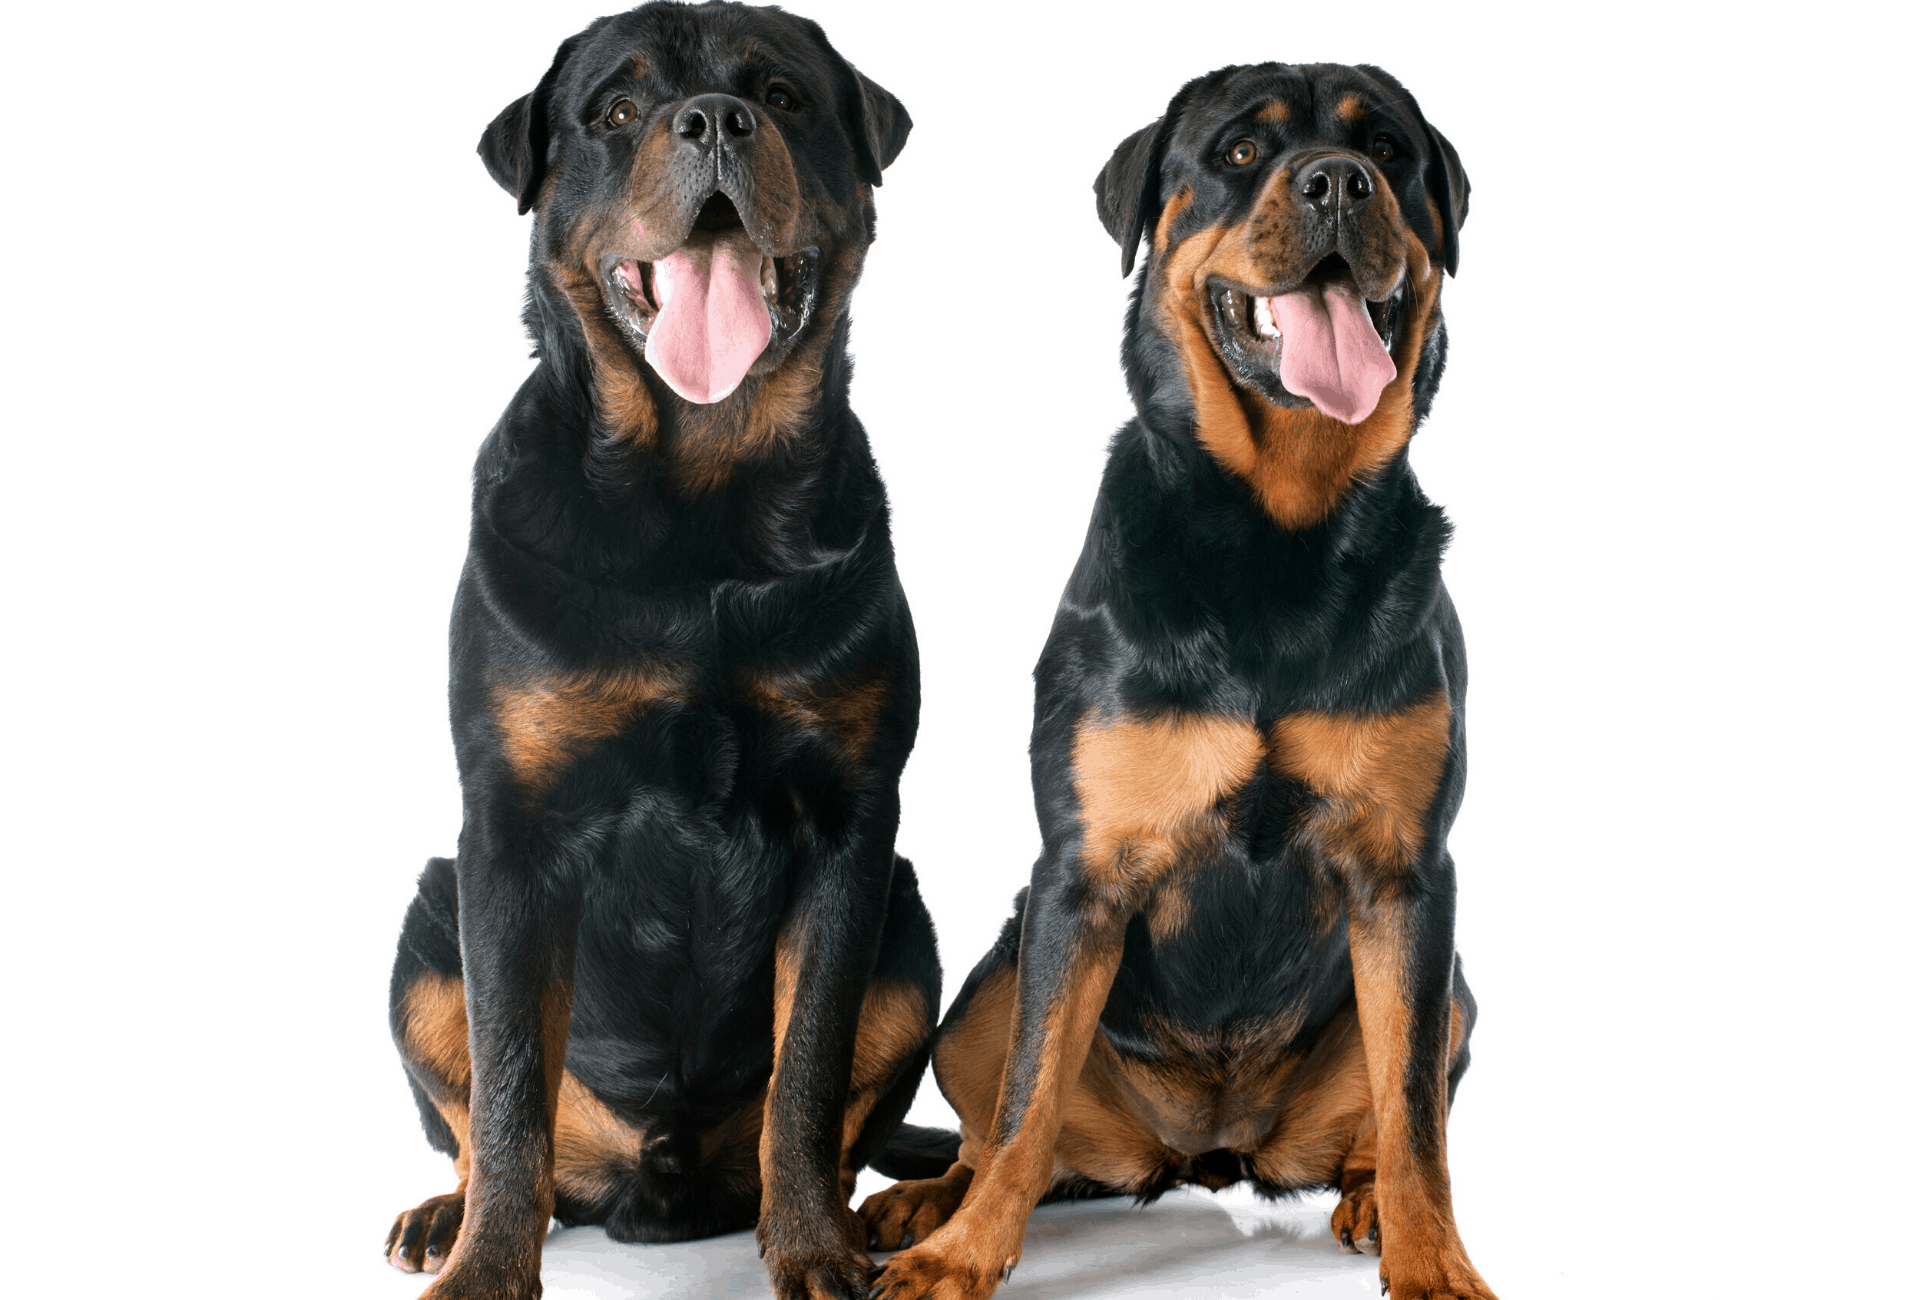 Comparison between Rottweiler colors. One Rottweiler is nearly all-black and the other dog has lots of light tan markings.